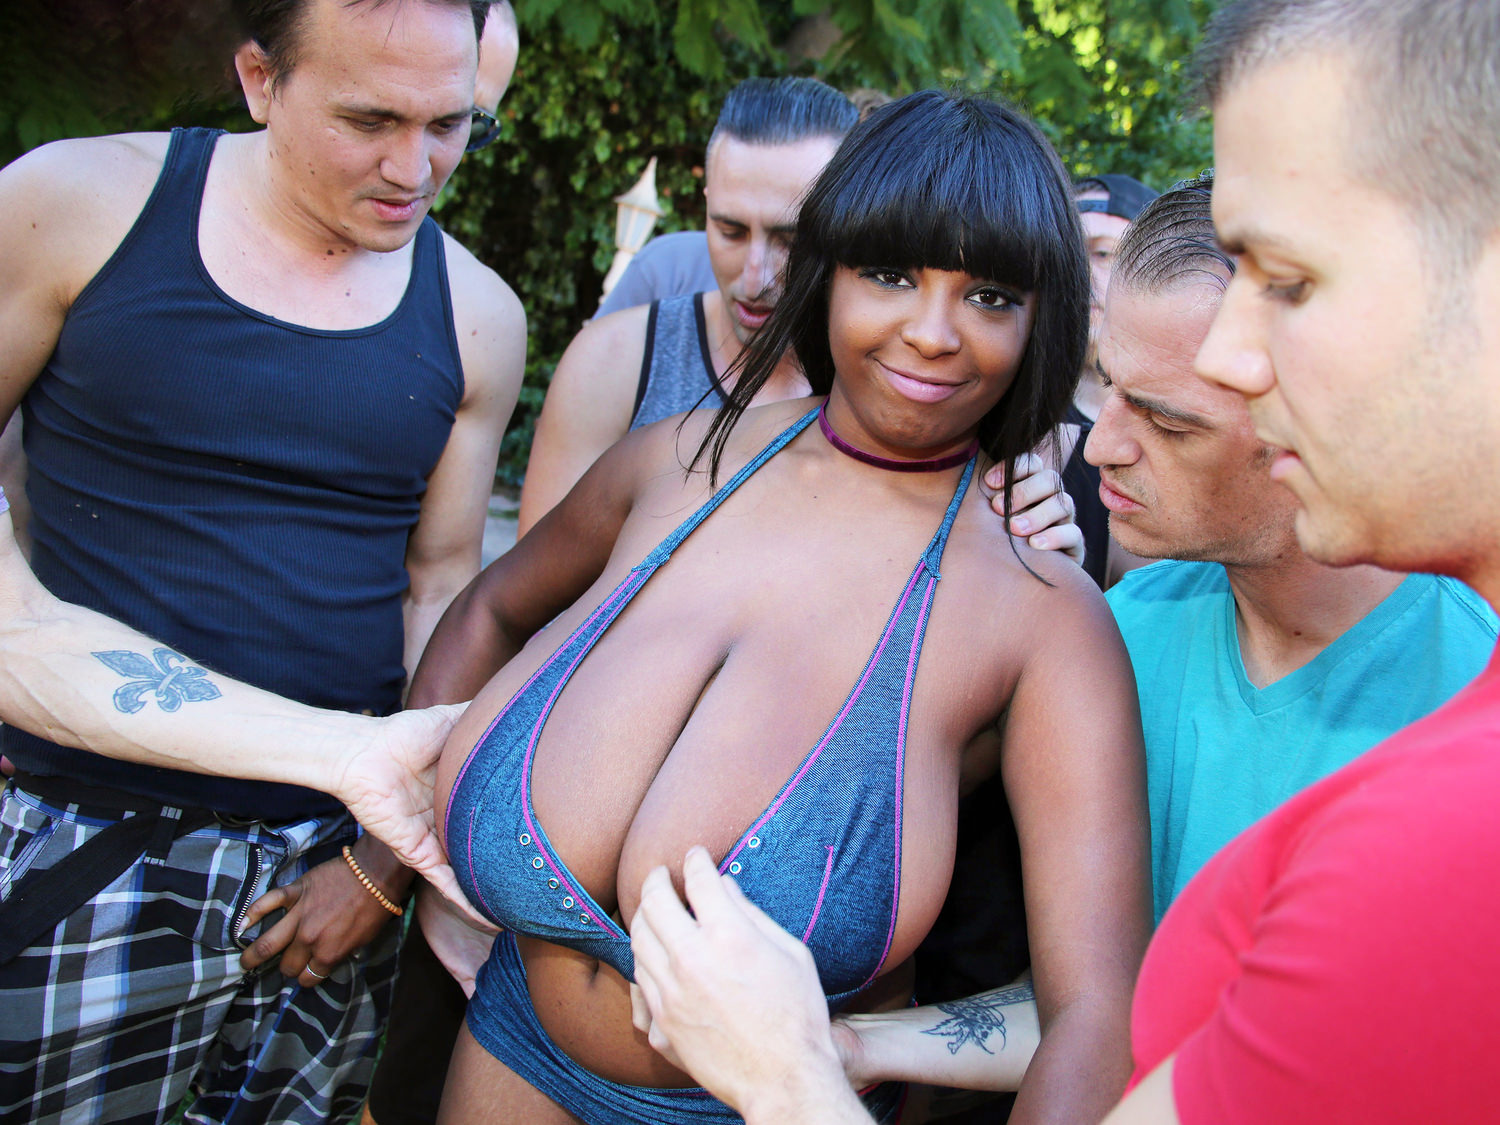 Black and Ebony,Big Boobs,Group Sex,Interracial,Gangbang,Dog Fart Network,HD Videos,Ebony Group,Busty Ebony,Ebony Sex